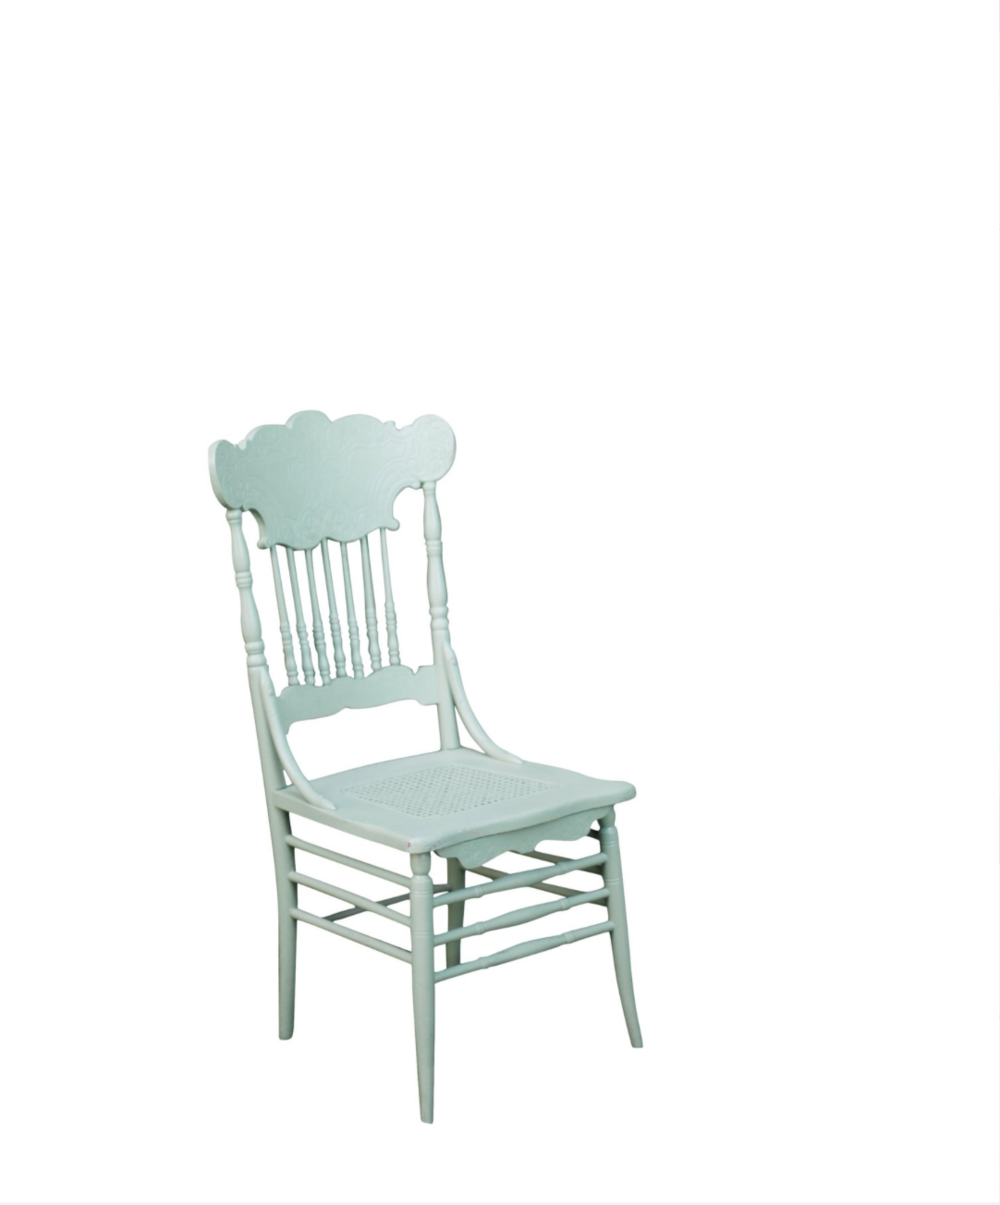 Mint Chairs (2)